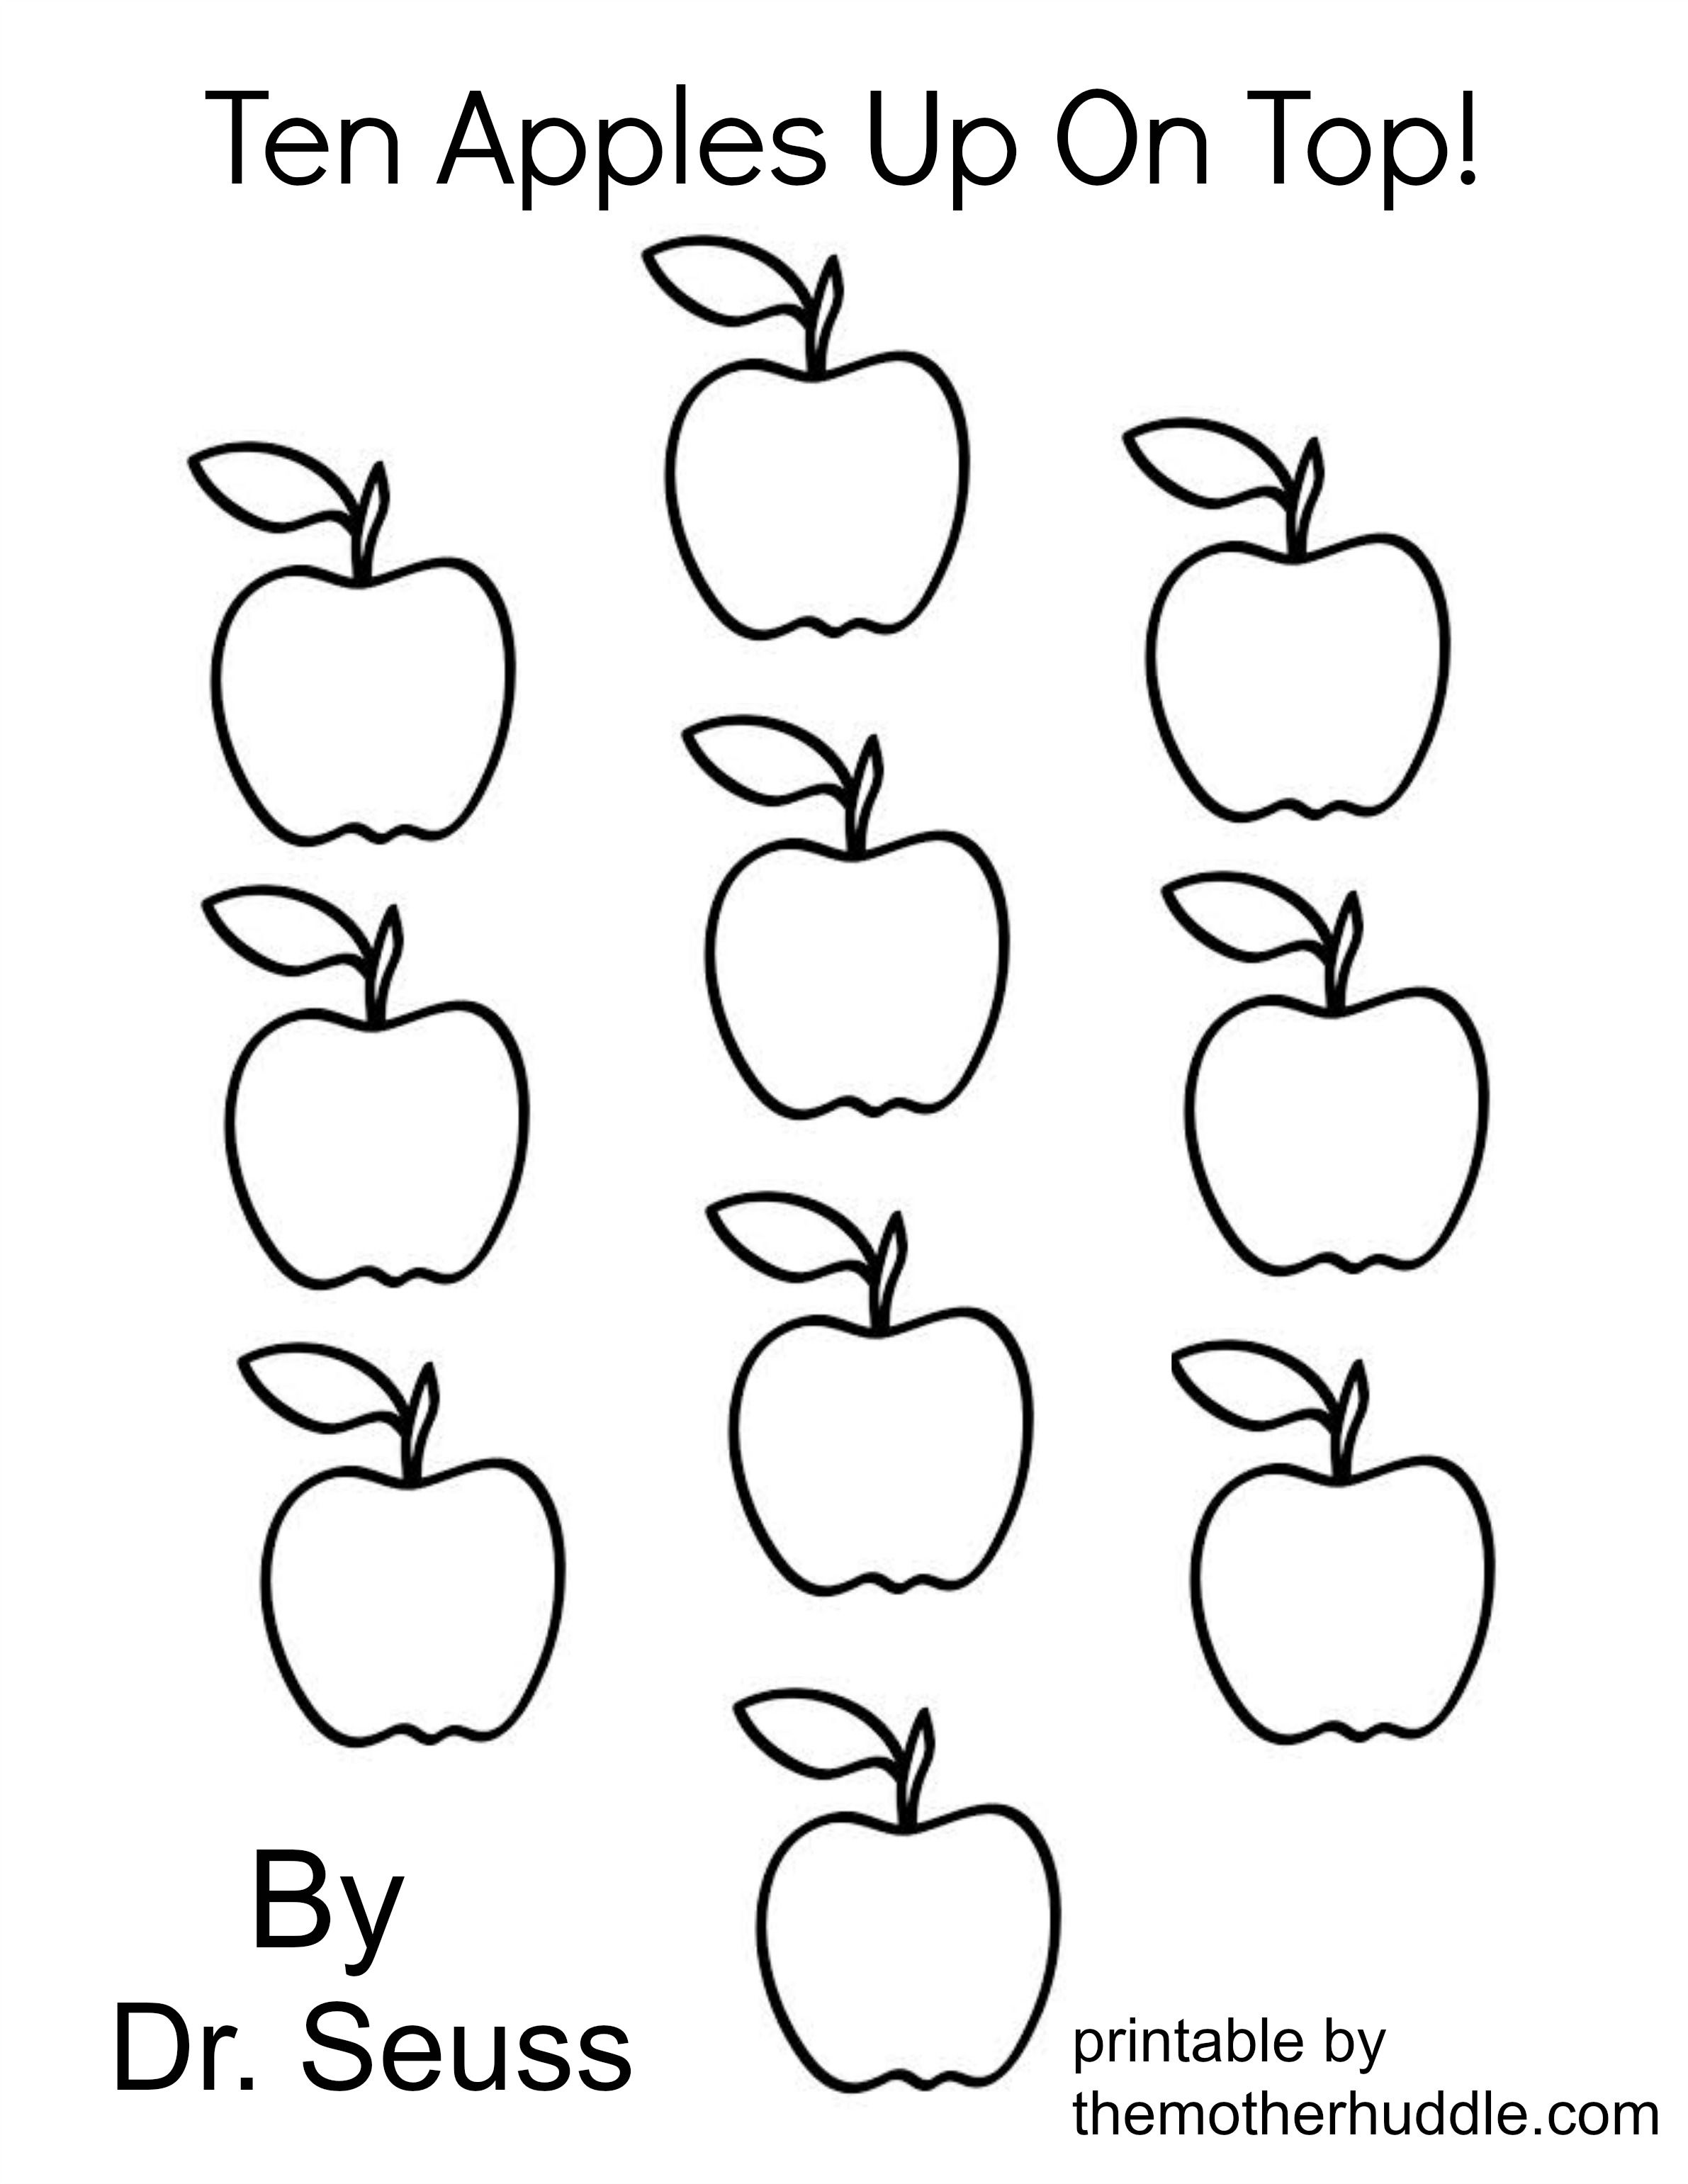 Apple Themed Coloring Pages : Ten apples up on top dr seuss coloring page az